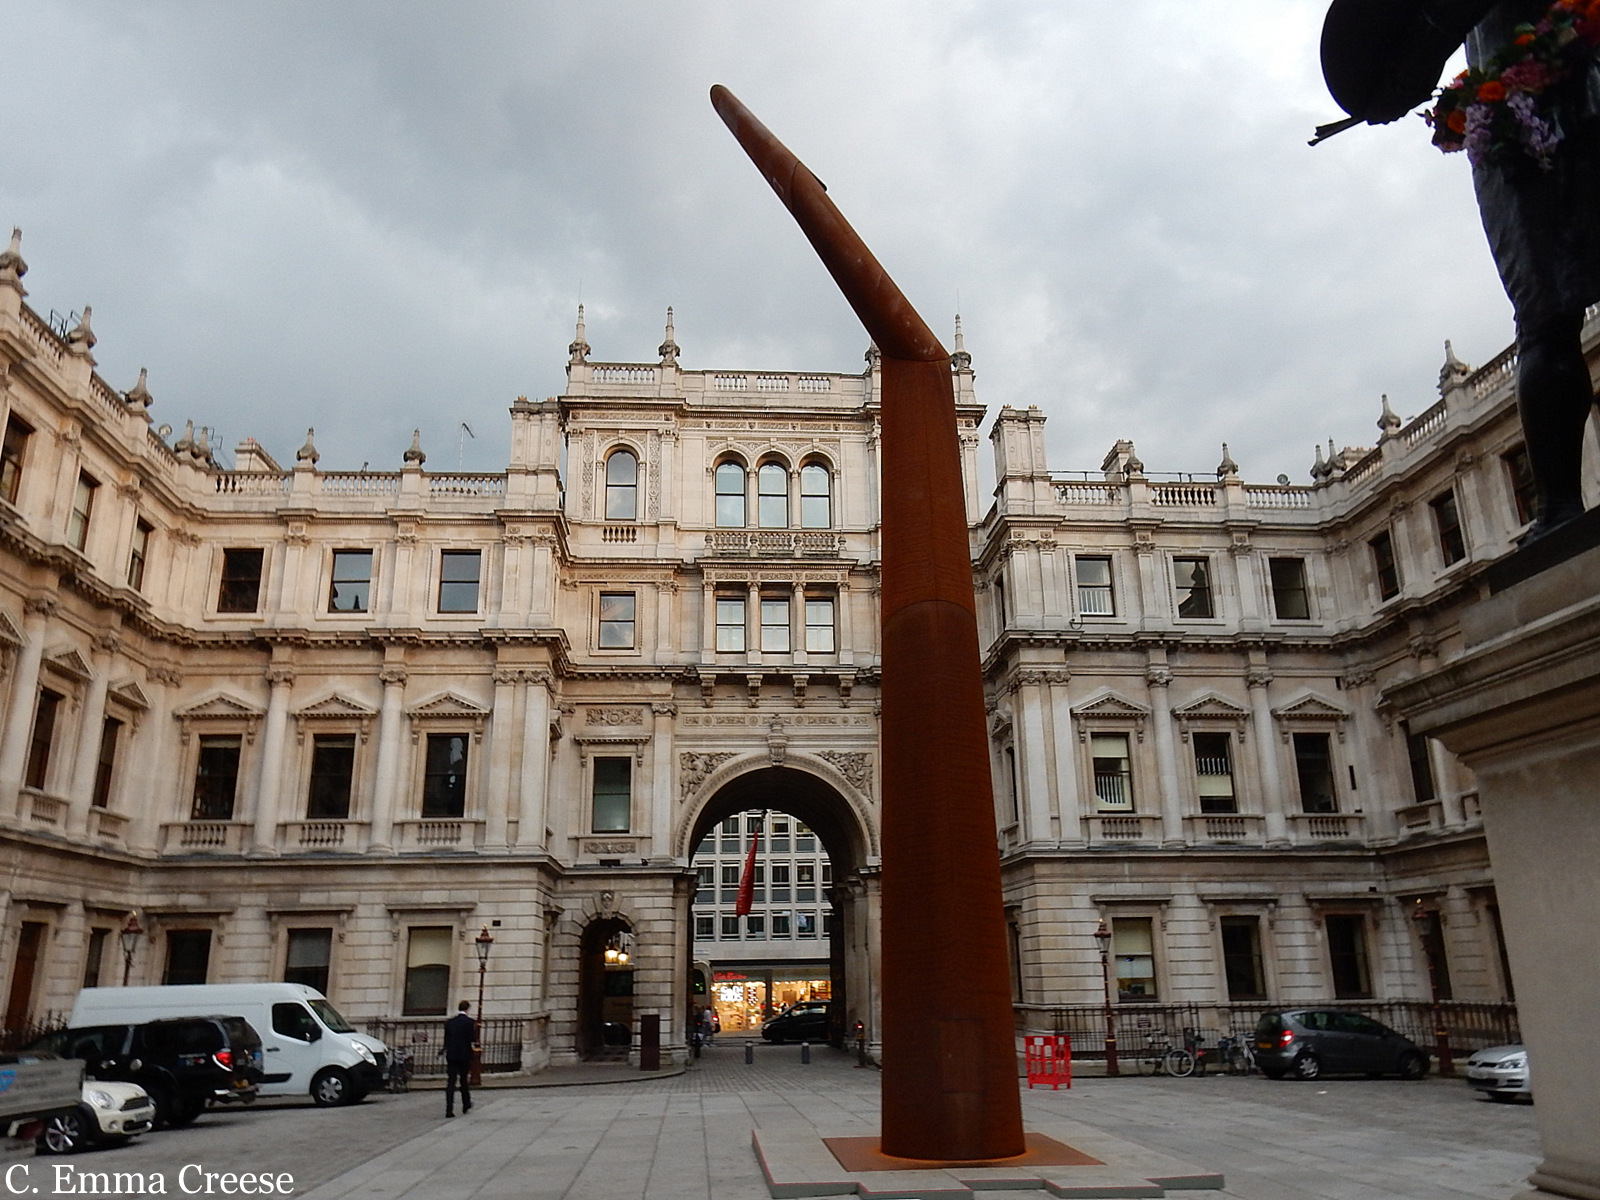 Modern art at the Royal Academy Adventures of a London Kiwi